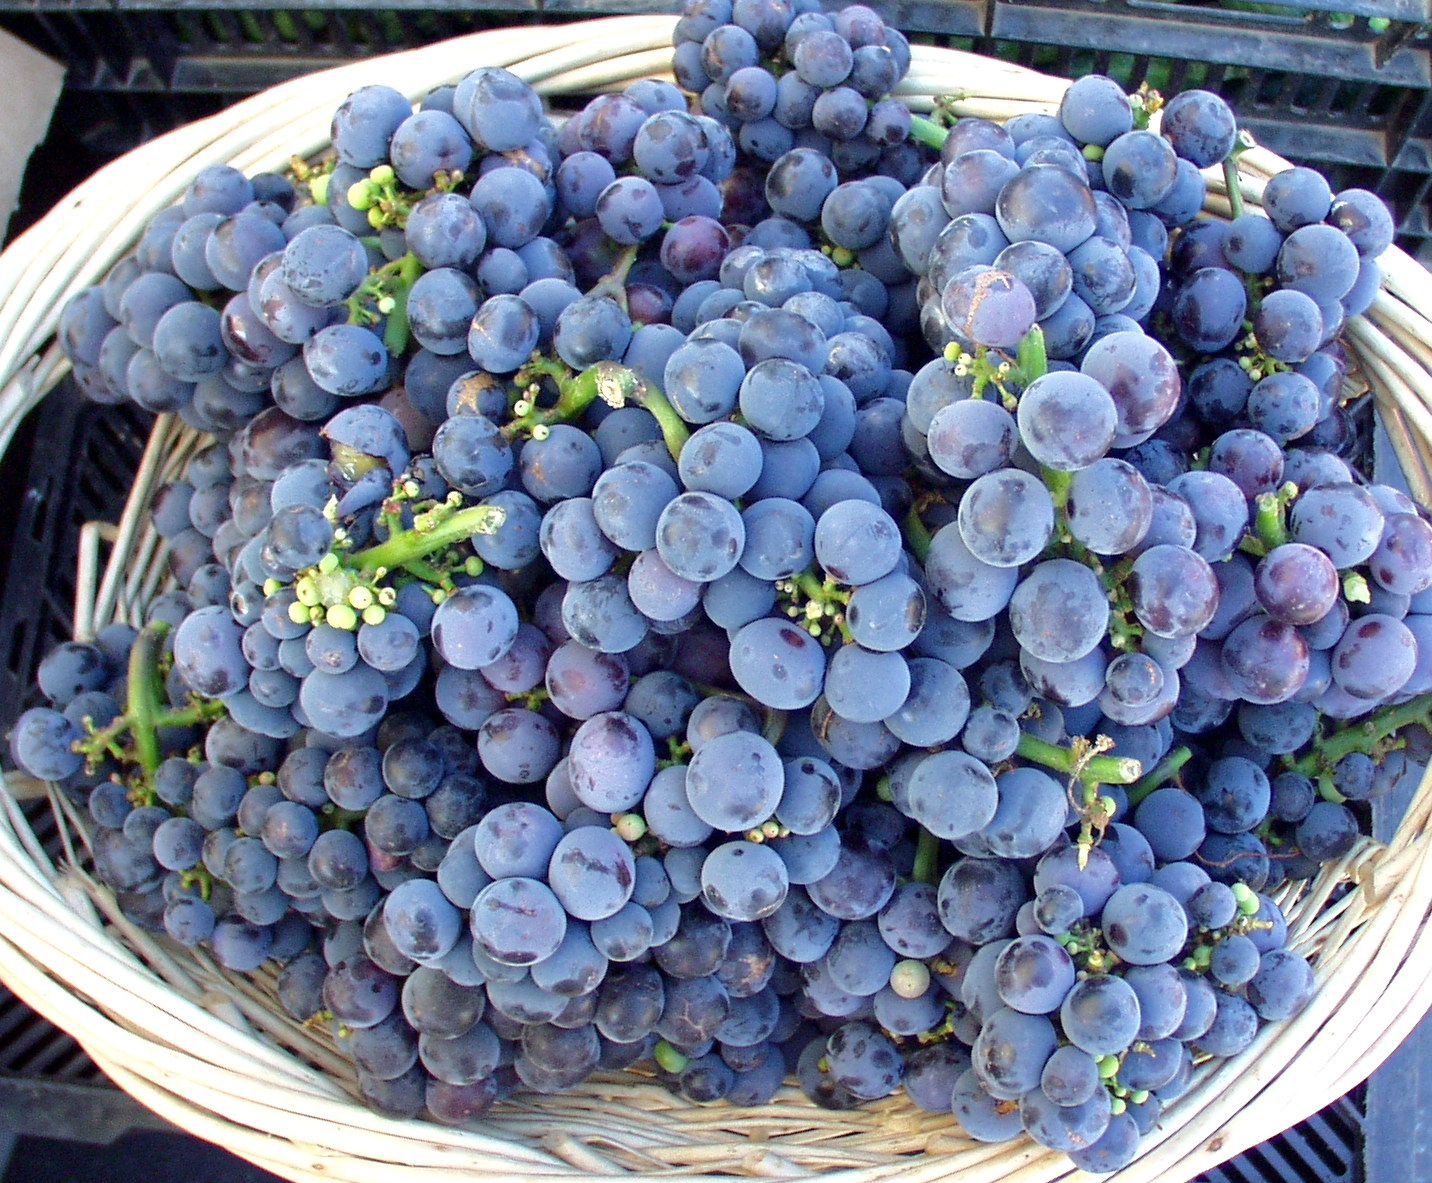 Concord grapes from Alm Hill. Photo copyright 2009 by Zachary D. Lyons.